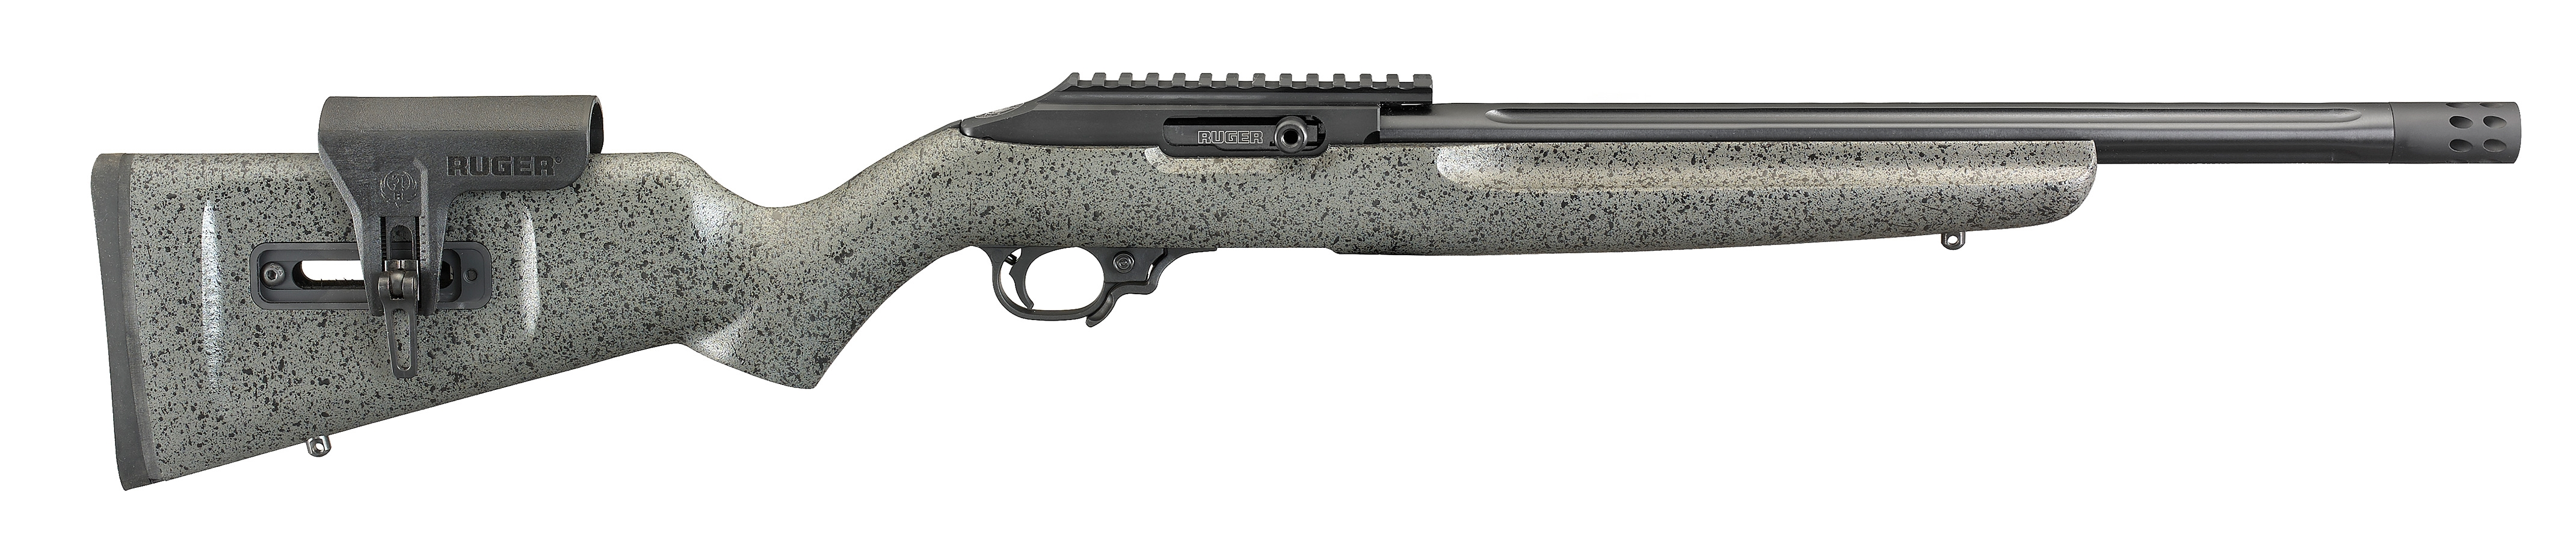 Ruger 10/22 Competition Custom Shop 22 LR